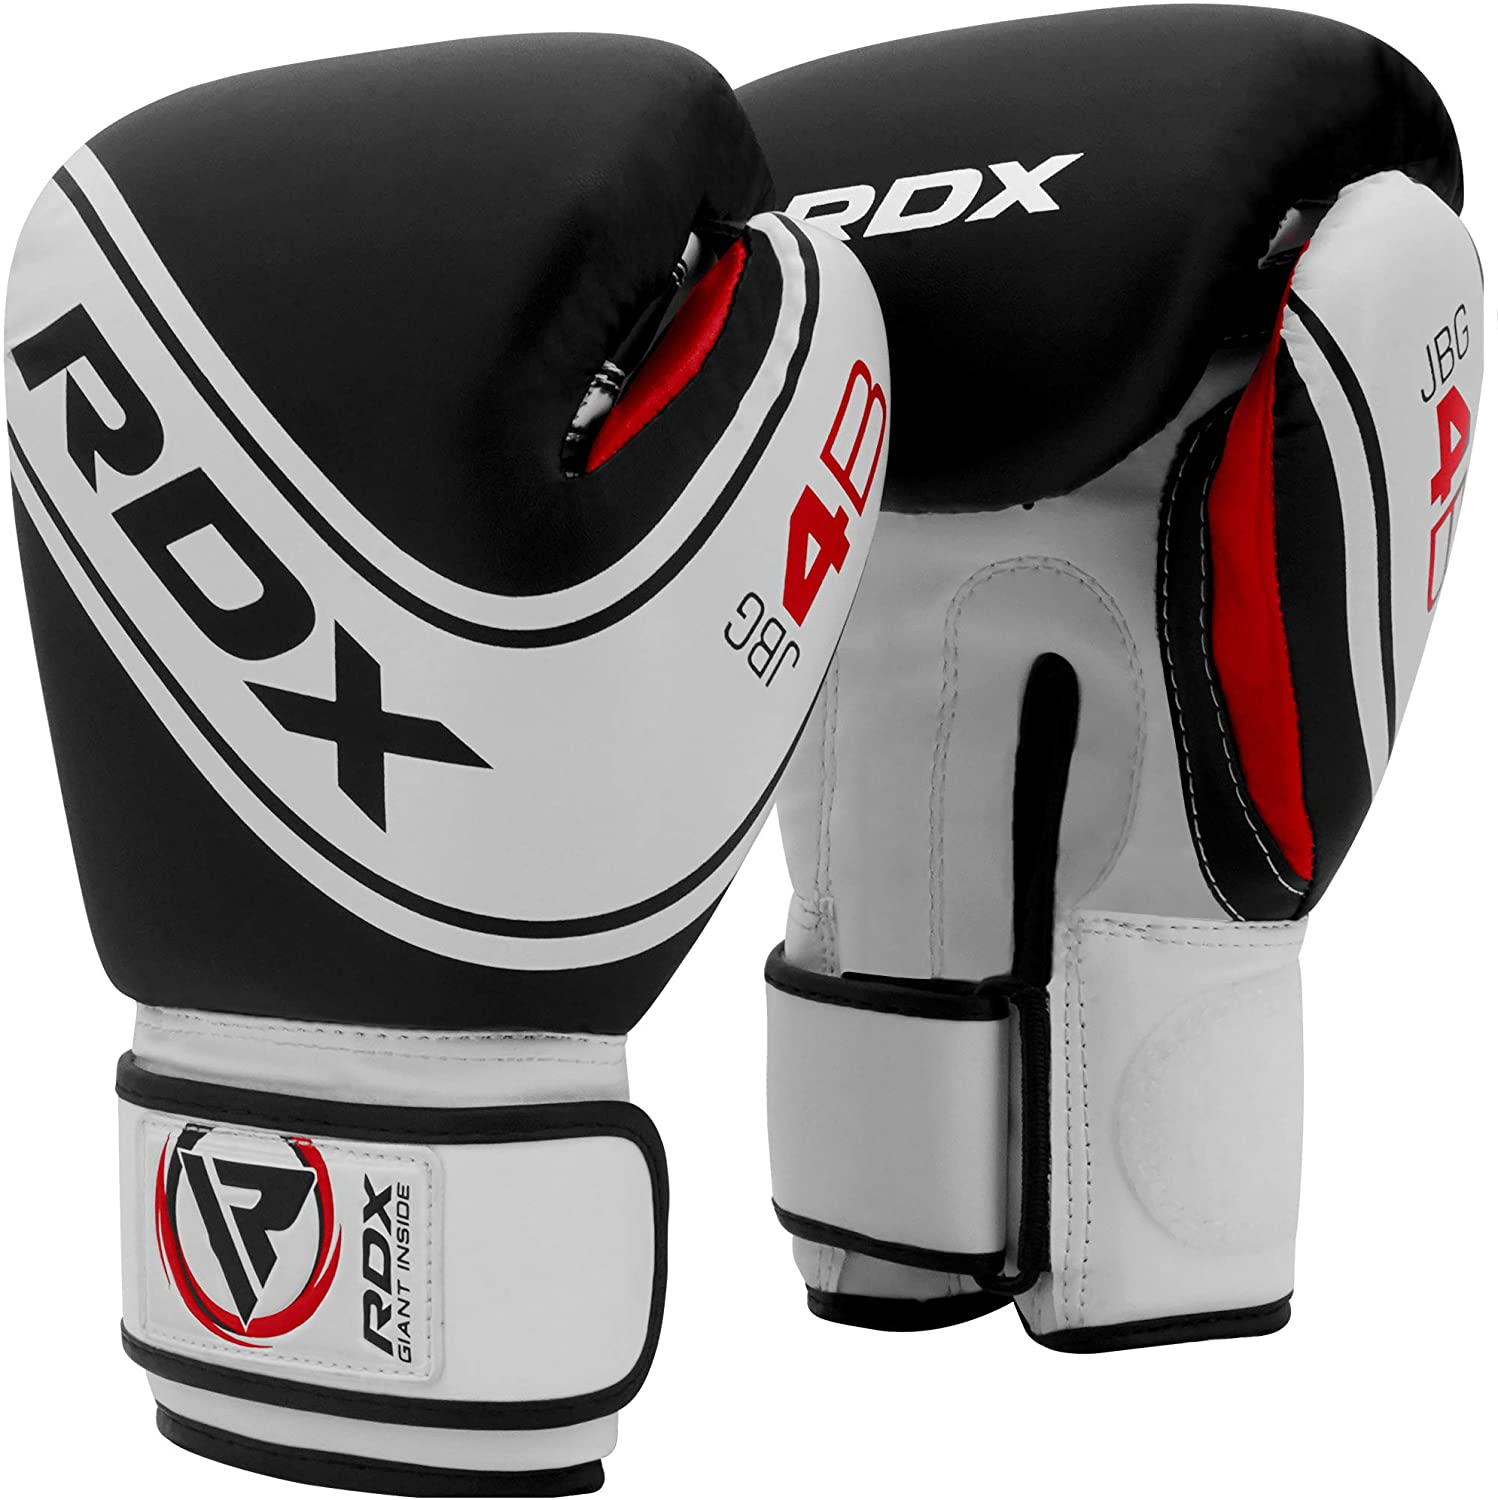 PLUS PO Boxing Gloves Set Boxing Gloves And Pads Junior Boxing Gloves Focus Pads Boxing Gloves For Kickboxing Sparring Gloves Adult Boxing Gloves